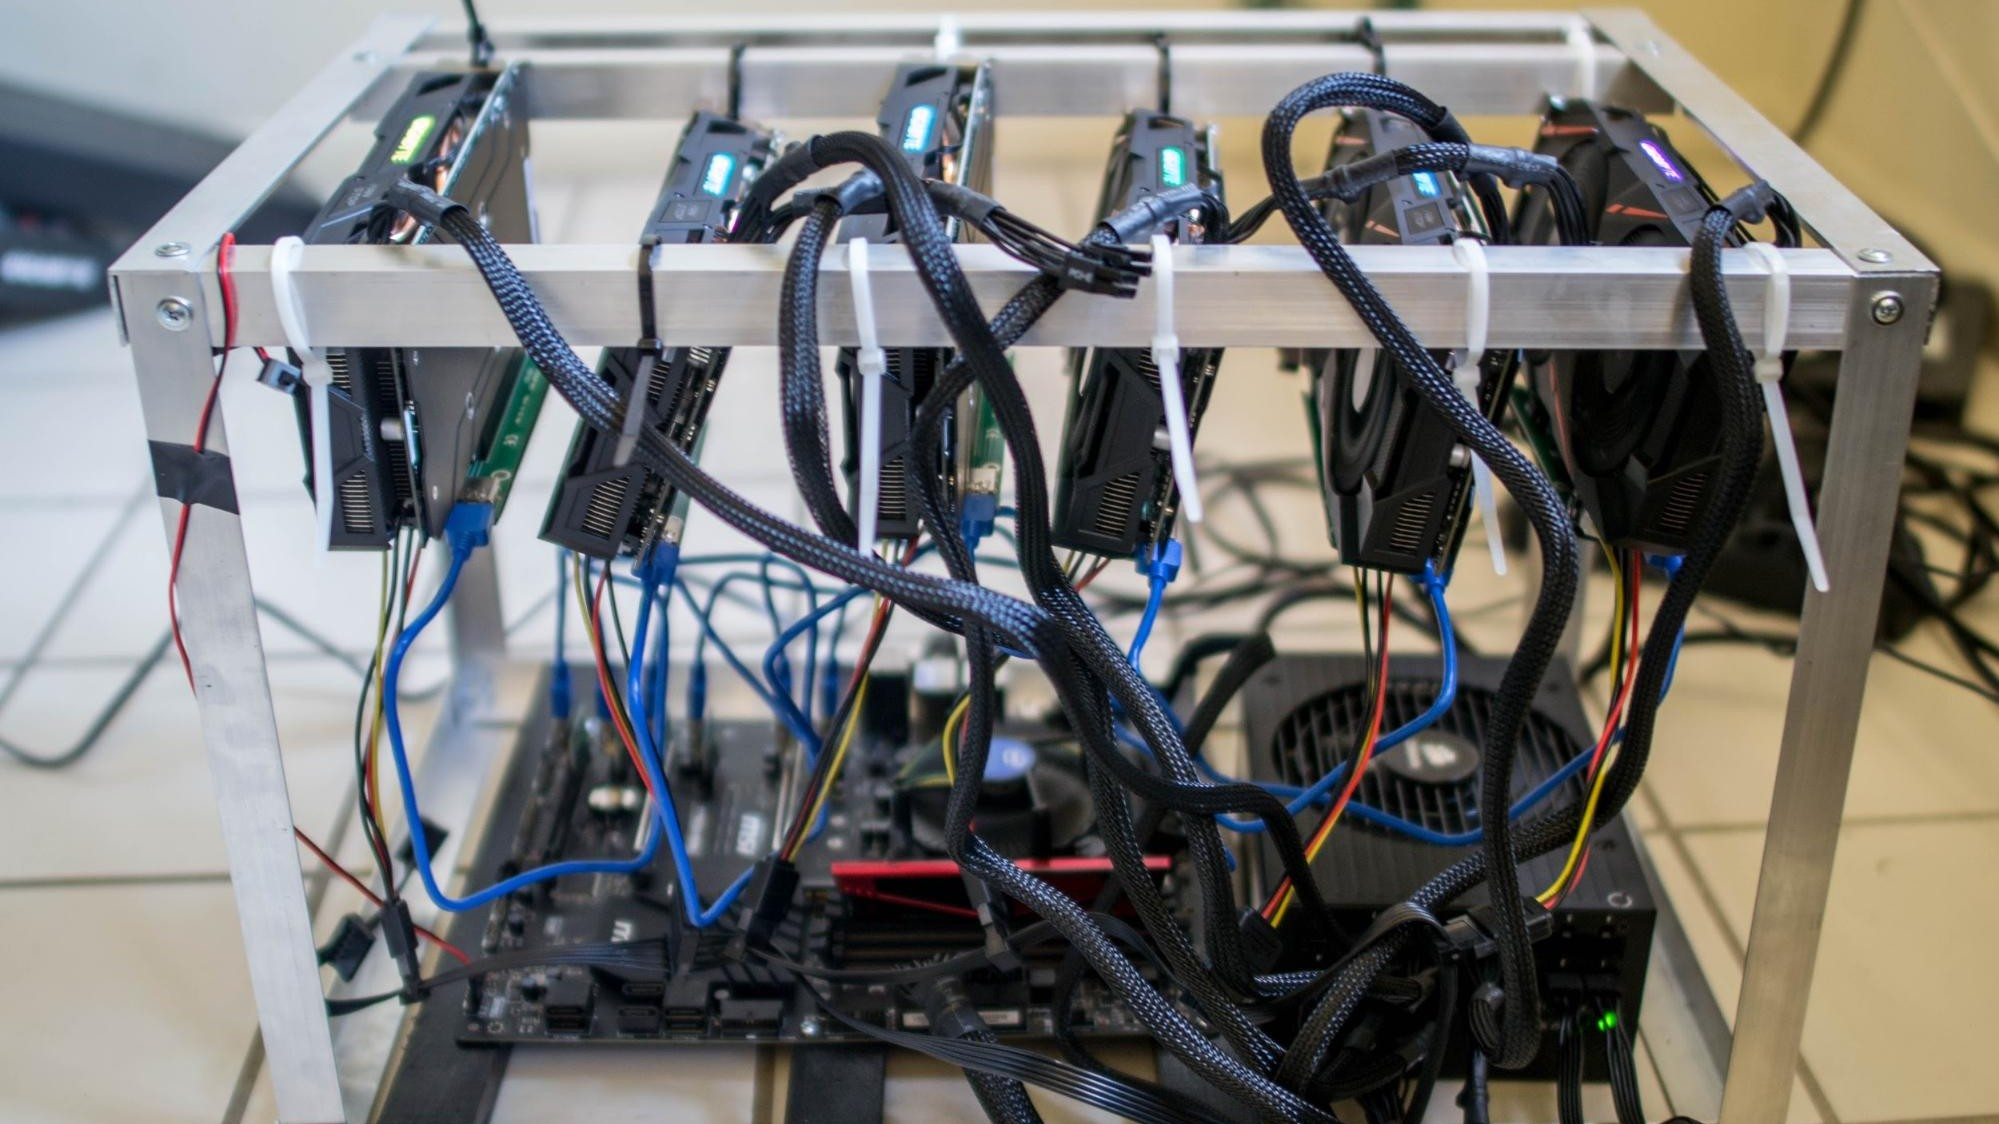 how much ram does a server need to mine cryptocurrency